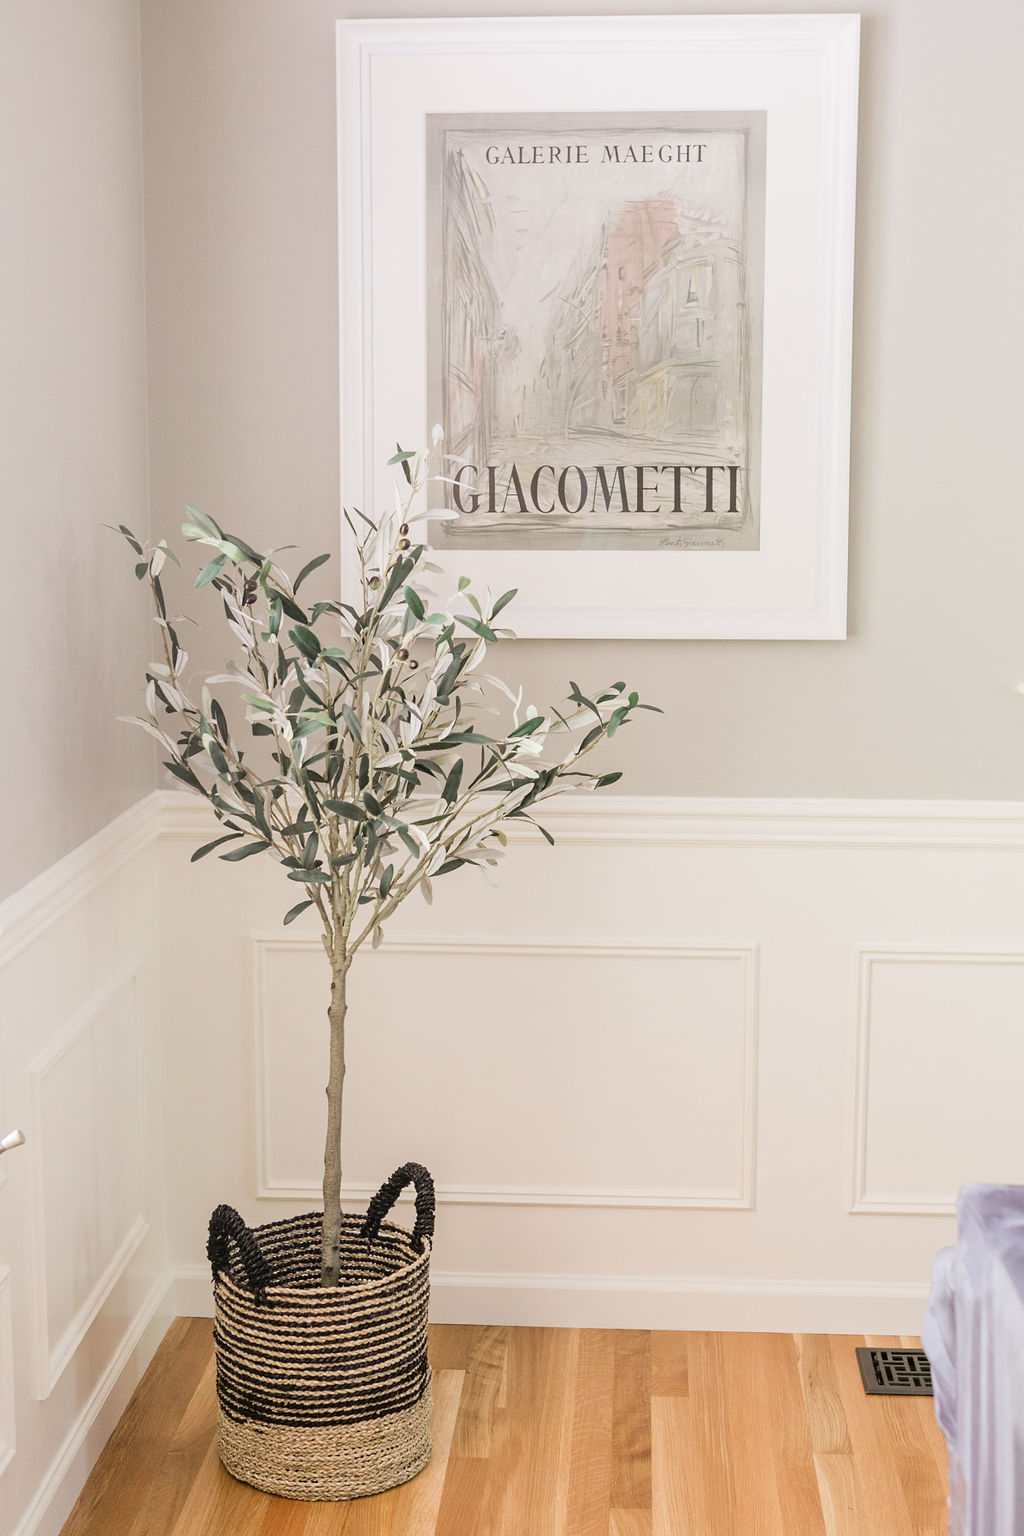 Faux tree in a basket with custom artwork, white millwork and hardwood floors.